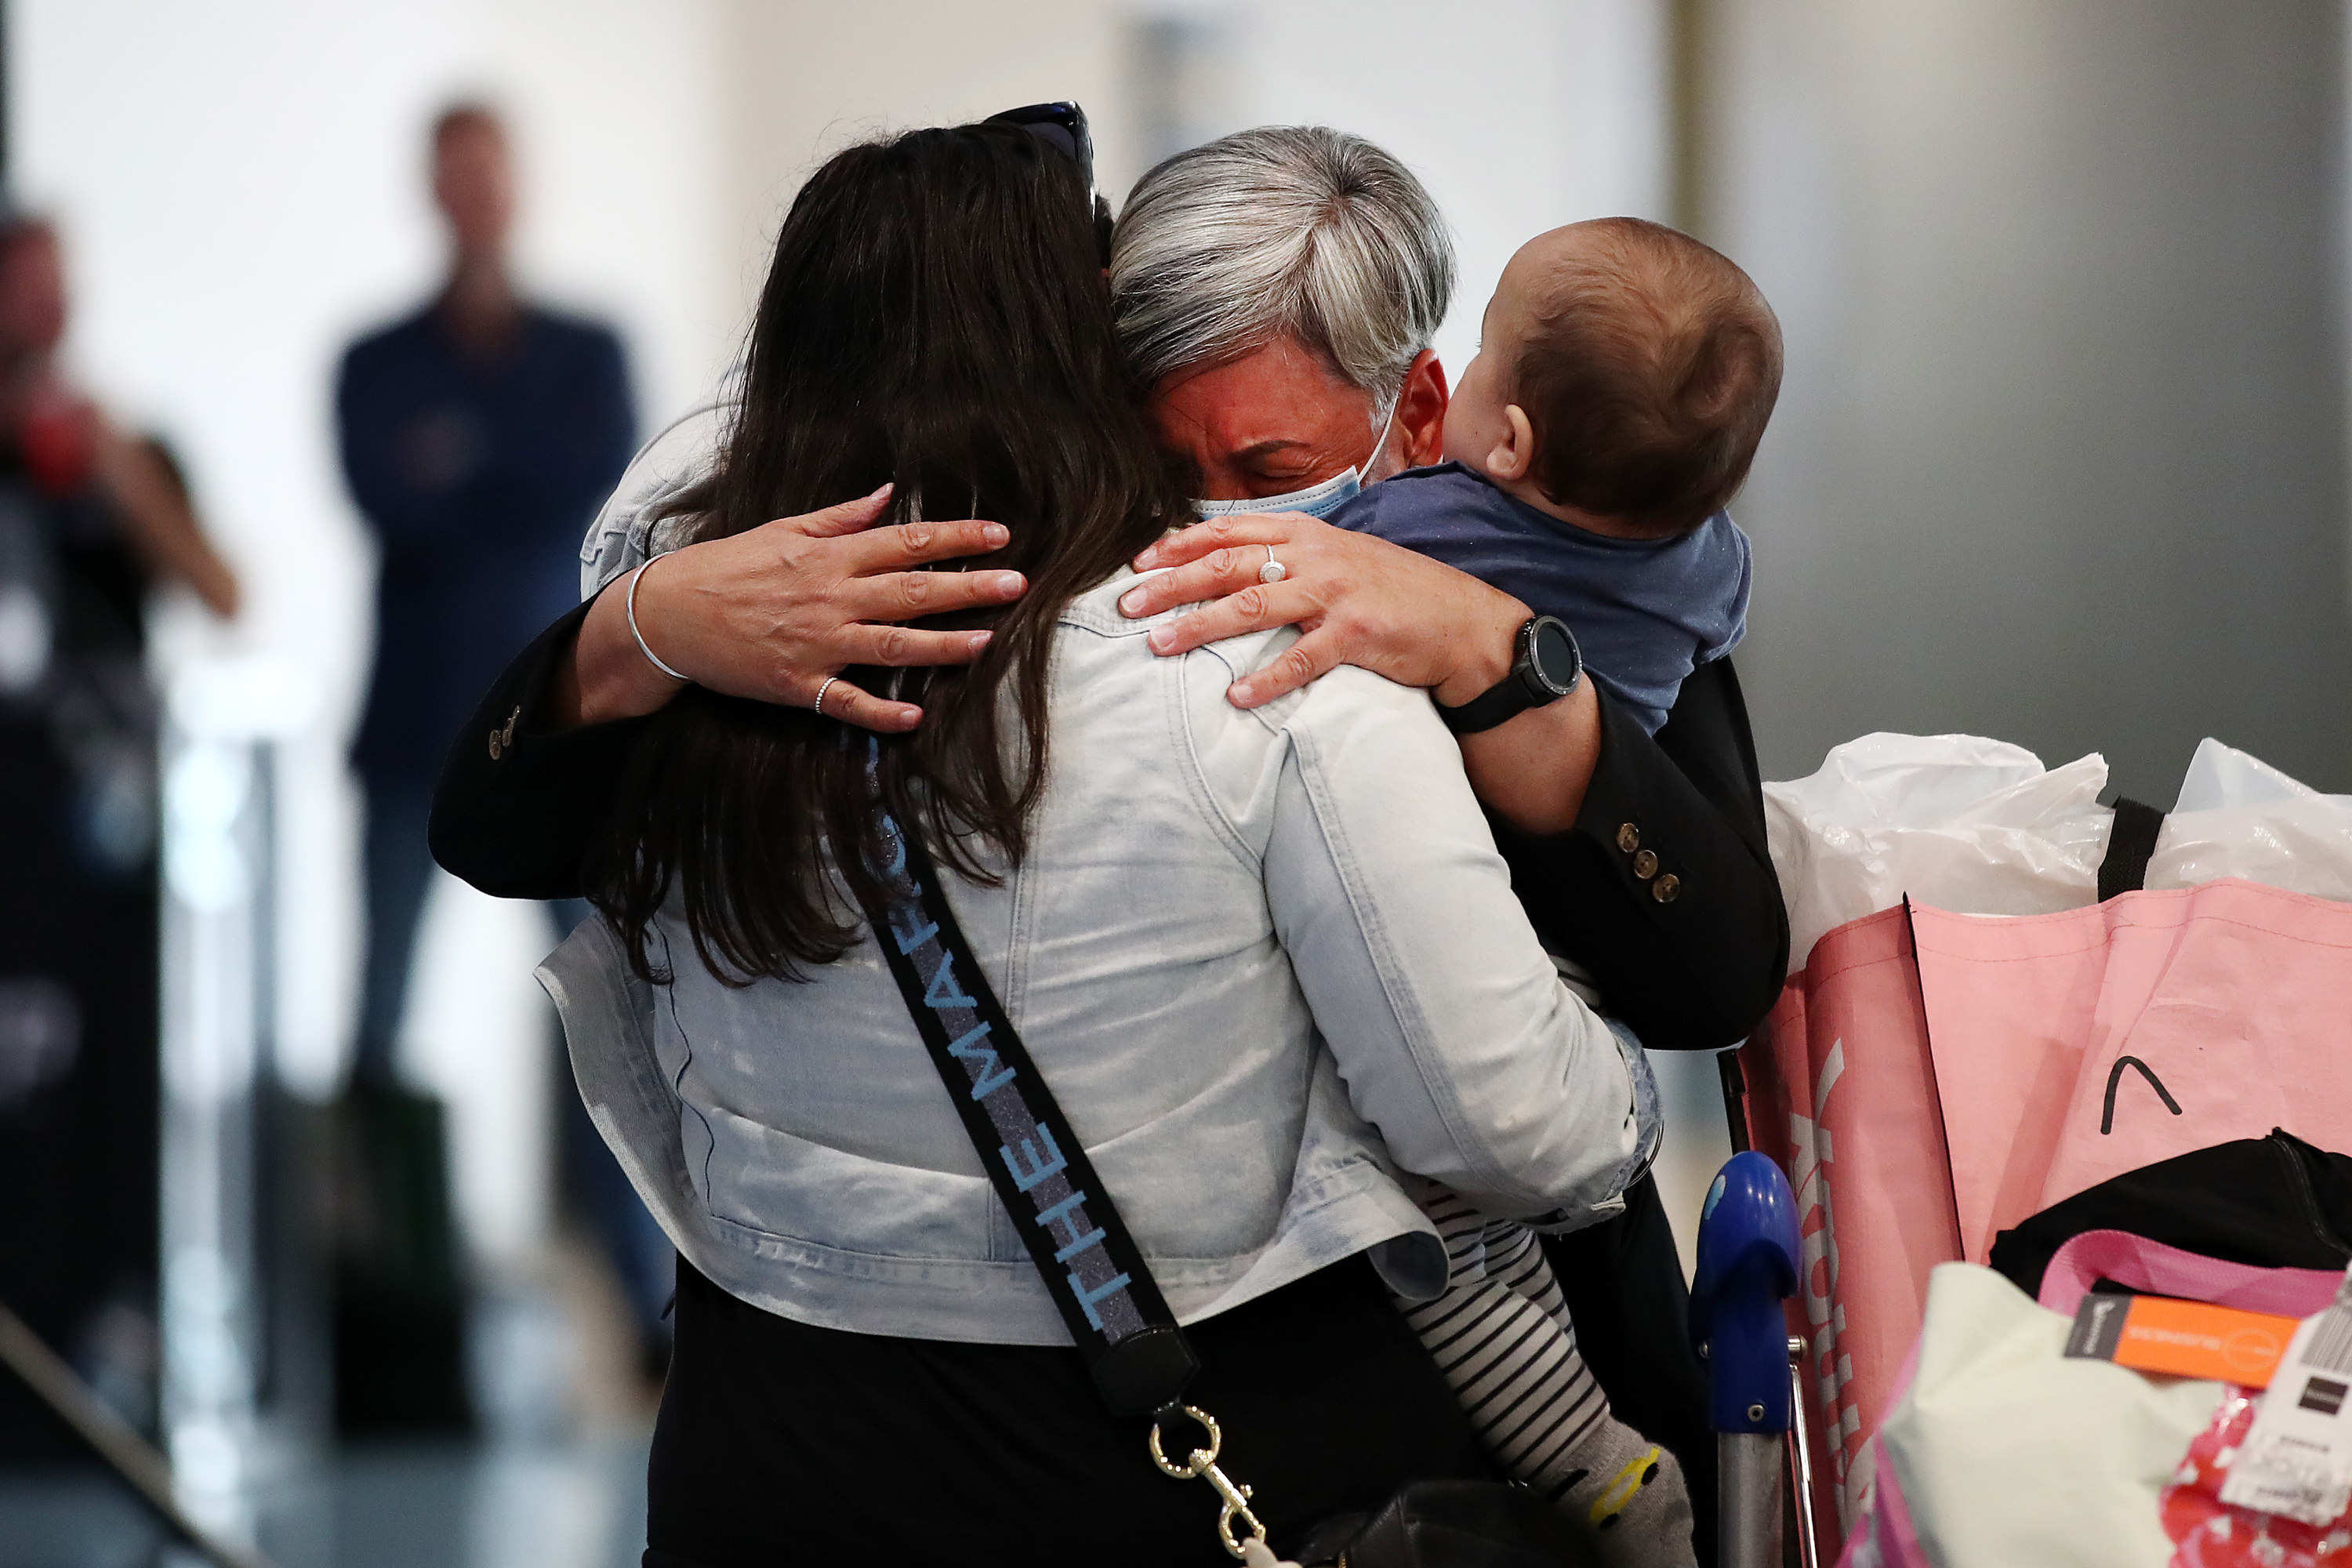 Two adults and a toddler embrace